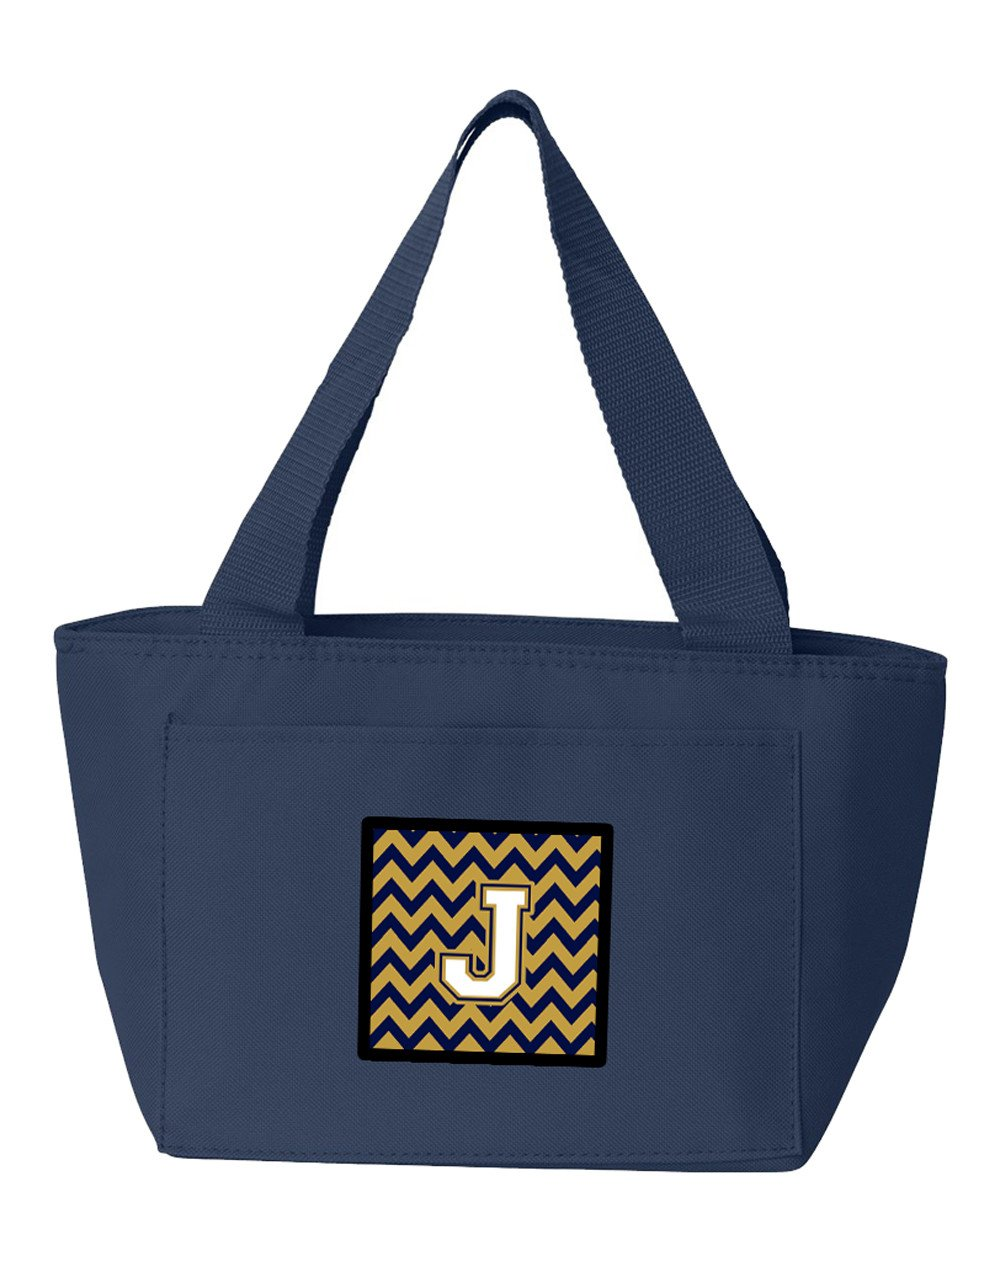 Letter J Chevron Navy Blue and Gold Lunch Bag CJ1057-JNA-8808 by Caroline's Treasures